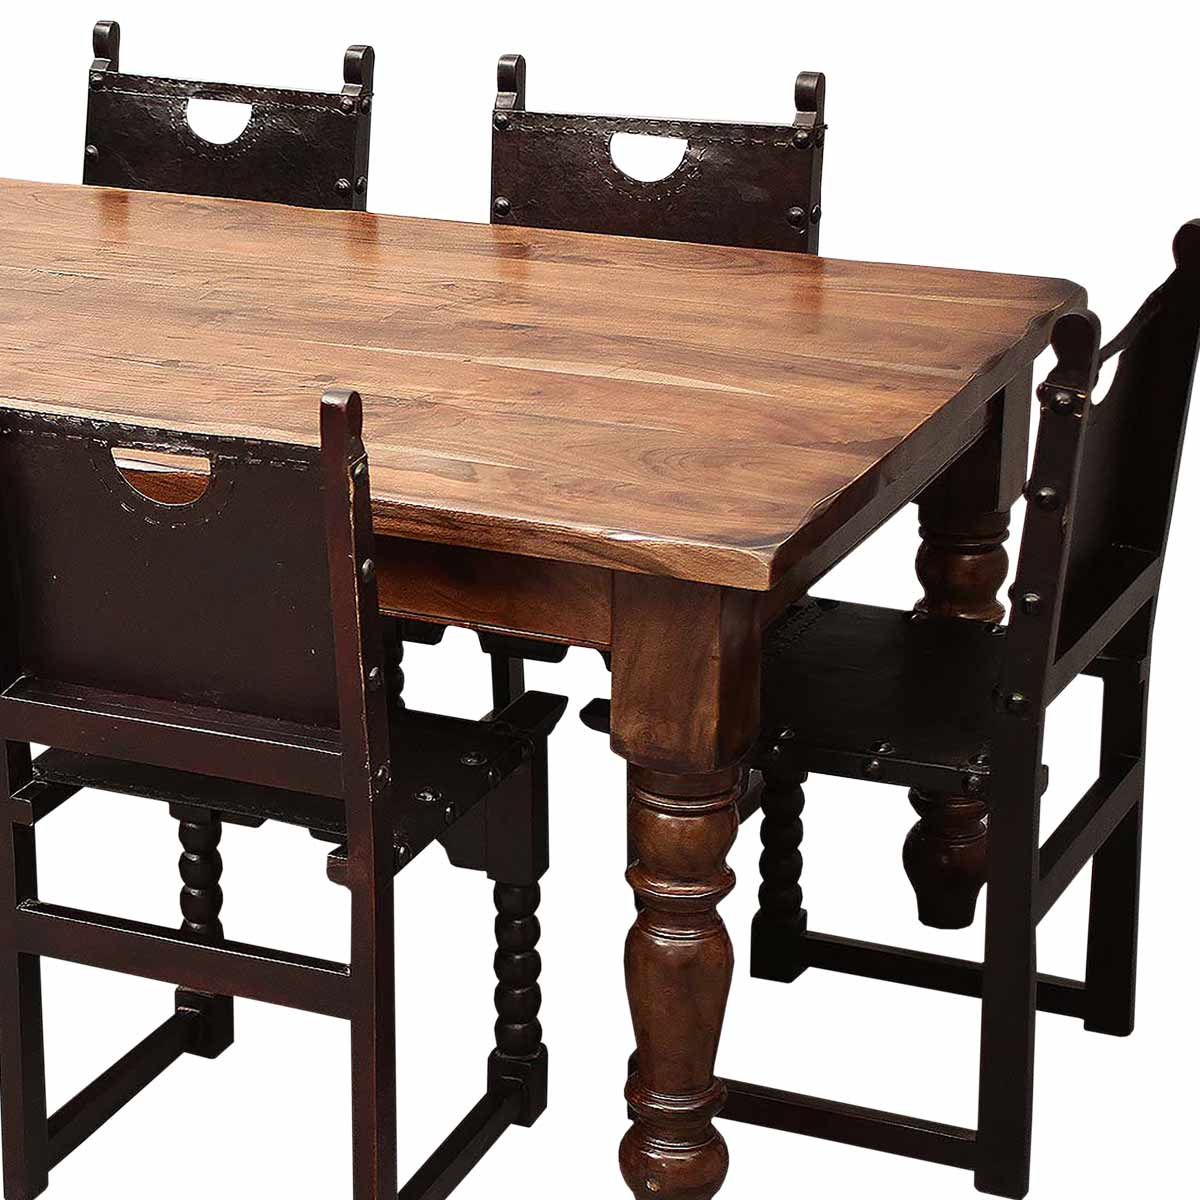 Classic Rustic Acacia Leather Dining Table Chair Set